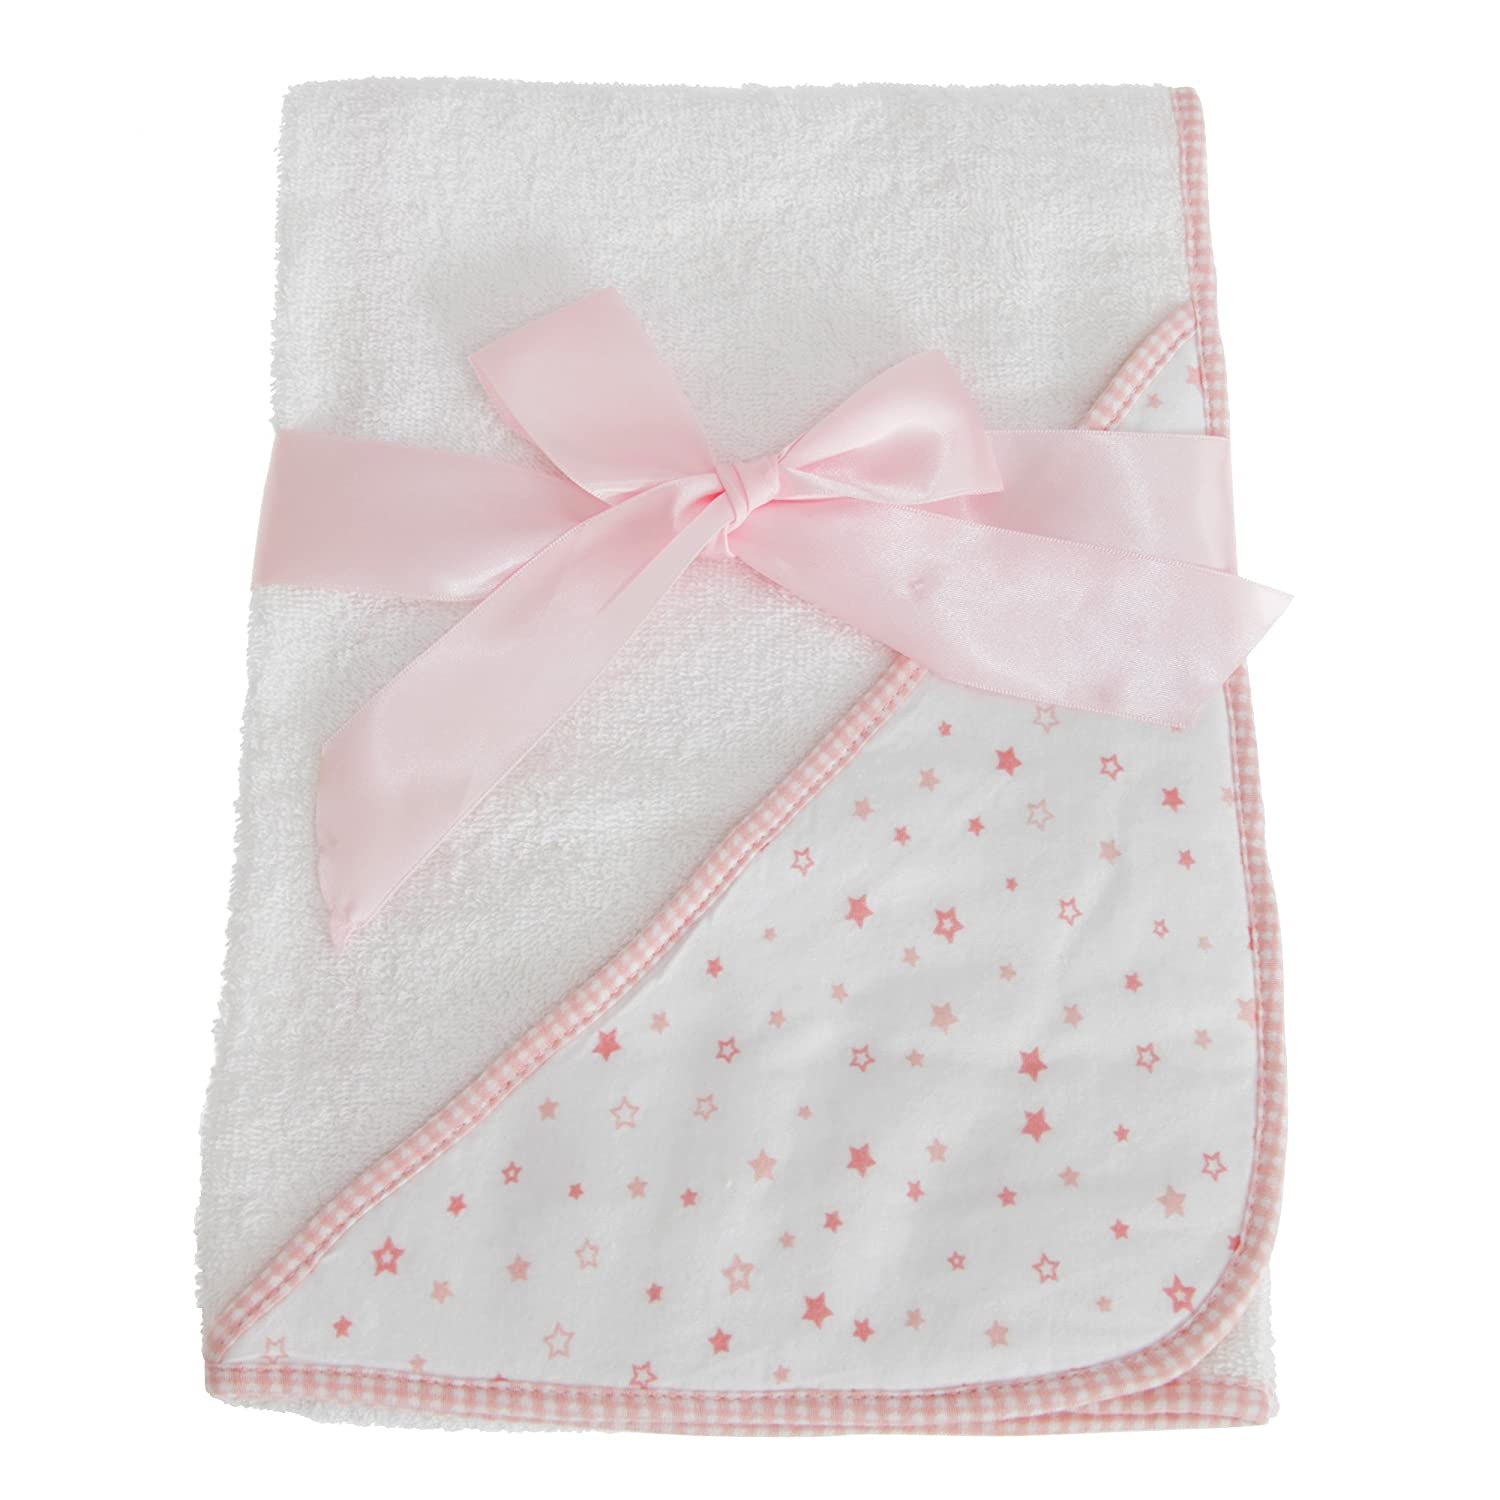 Snuggle Baby Hooded Towel For Someone Special With Star Design (30 x 30 Inch) (White/Pink) UTBABY1482_1